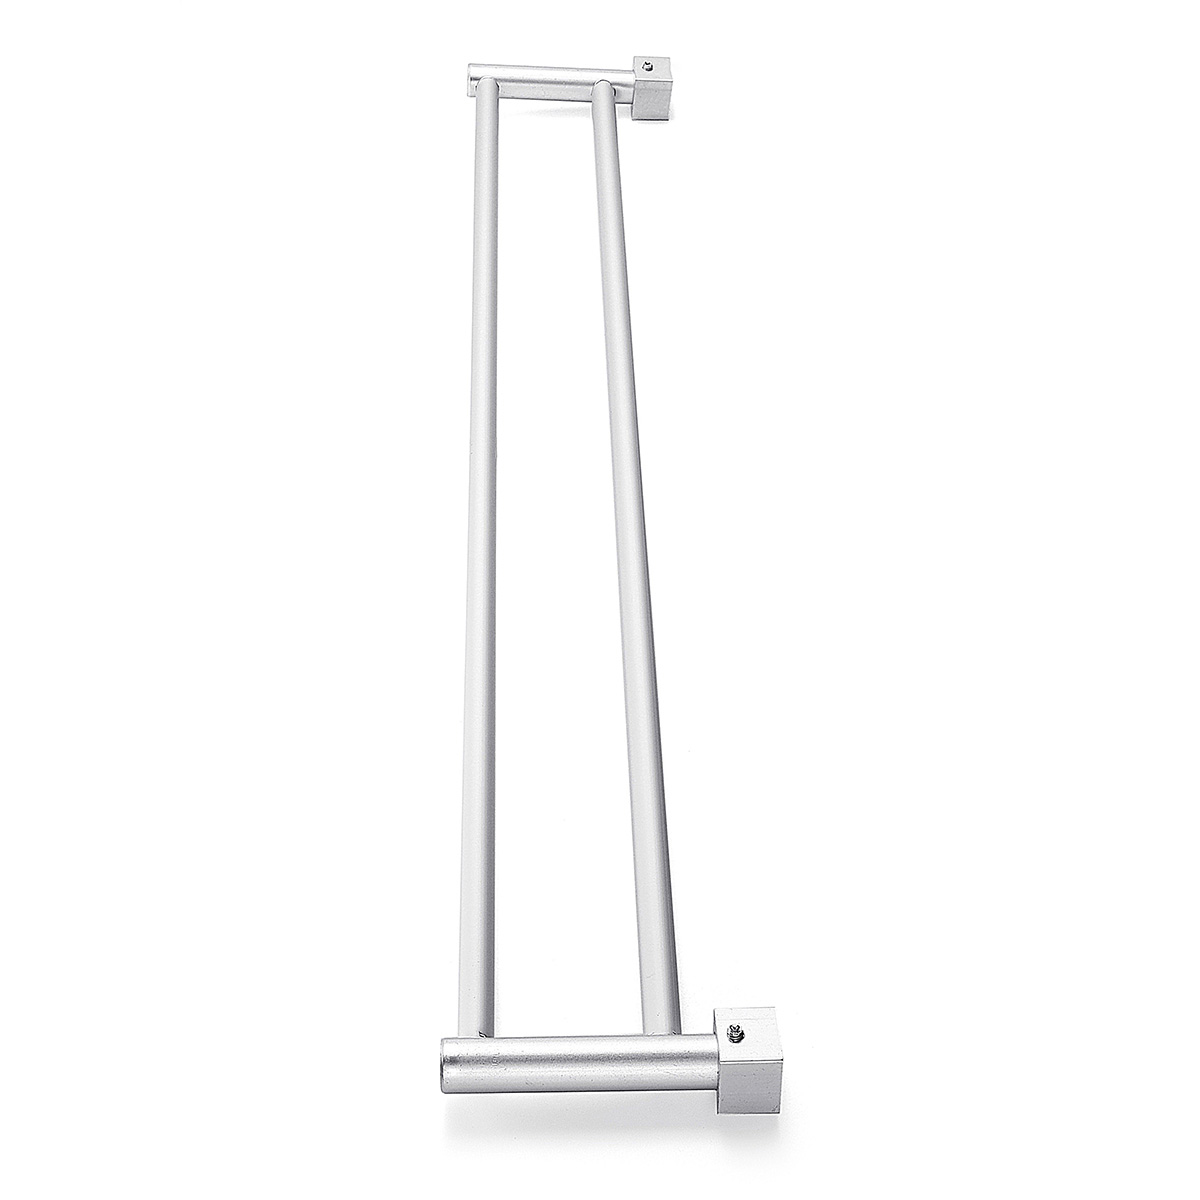 Bathroom Double Towel Holder Rail Rack 2 Bar 60cm Stainless Steel Hanger Wall Mount